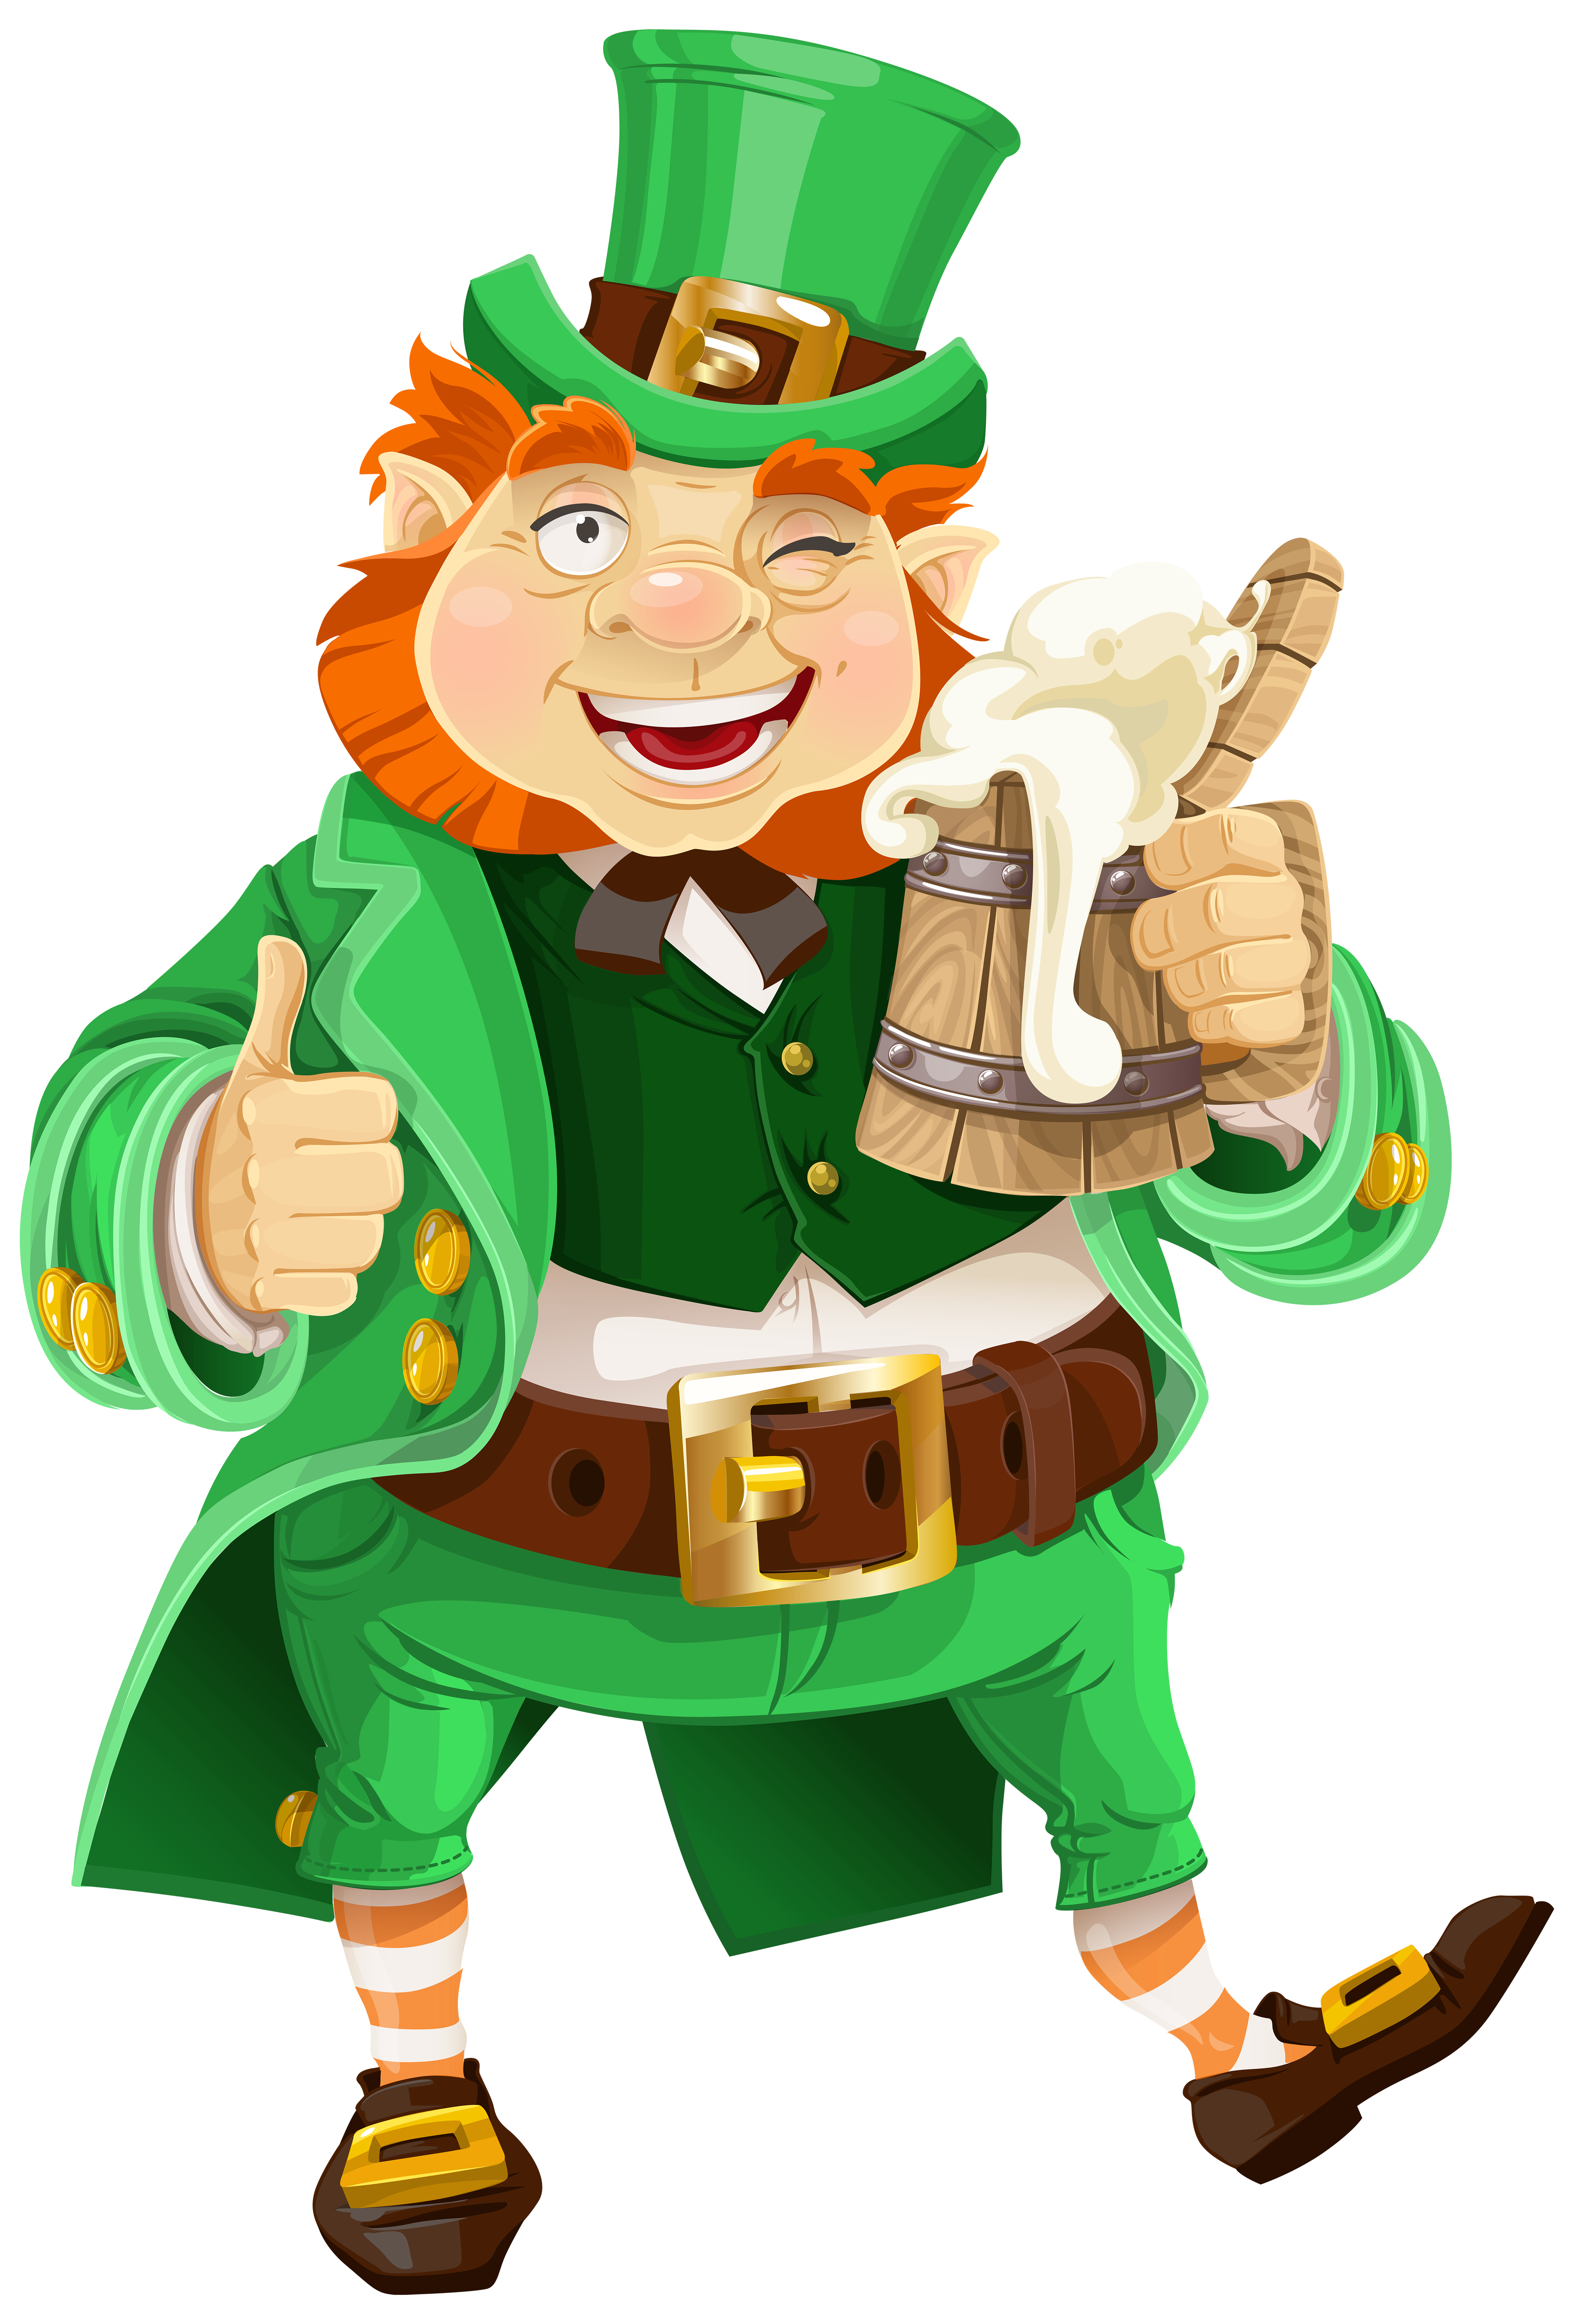 St patrick leprechaun png. Patricks day with beer